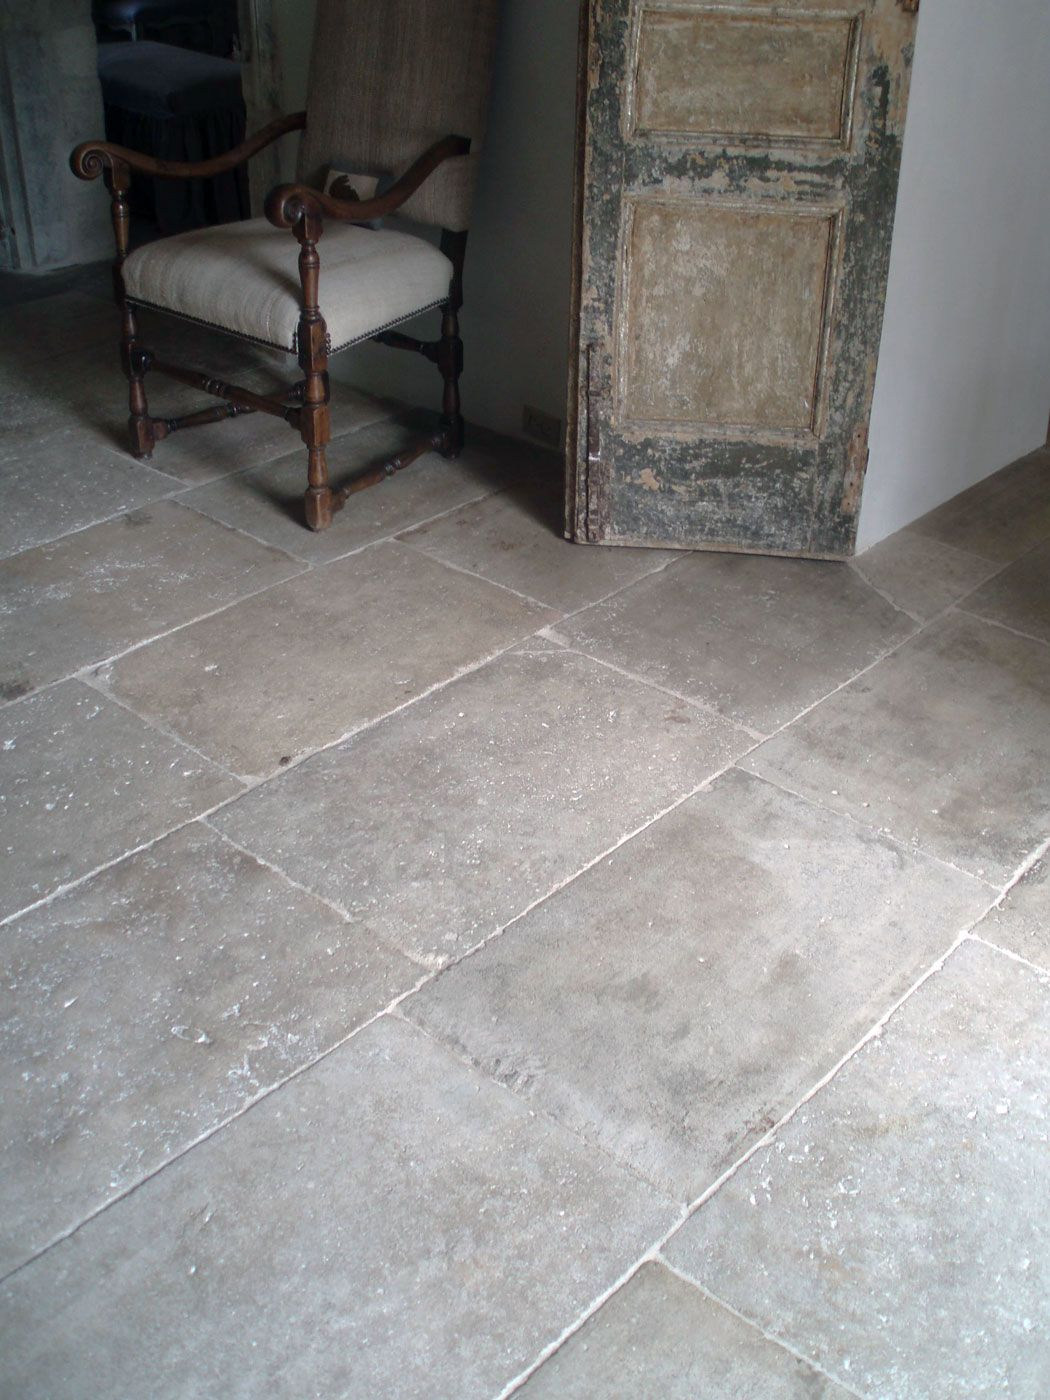 Rinser Naturstein Lapicida Barr De Montpellier Is A Reclaimed 18th - 19th Century Floor Tile Unique To The #french Tow… | Stone Flooring, Stone Tile Flooring, Natural Stone Flooring